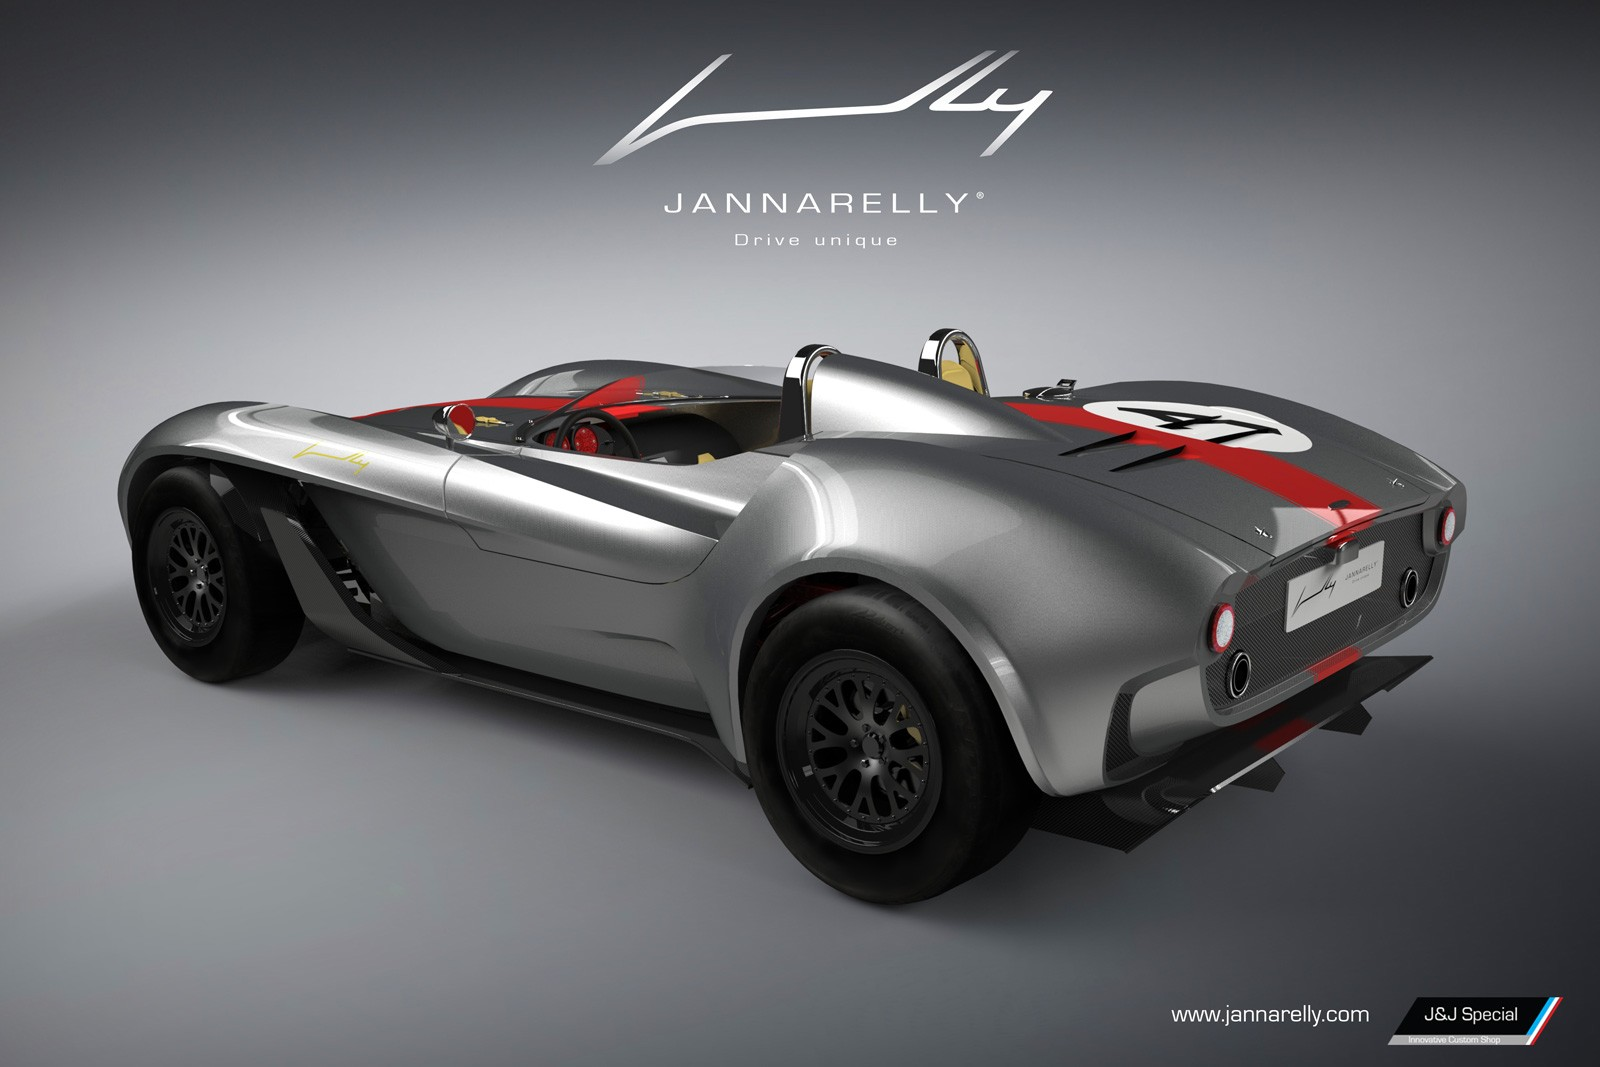 Jannarelly Unveils Its First Car, A Retro-Looking Supercar